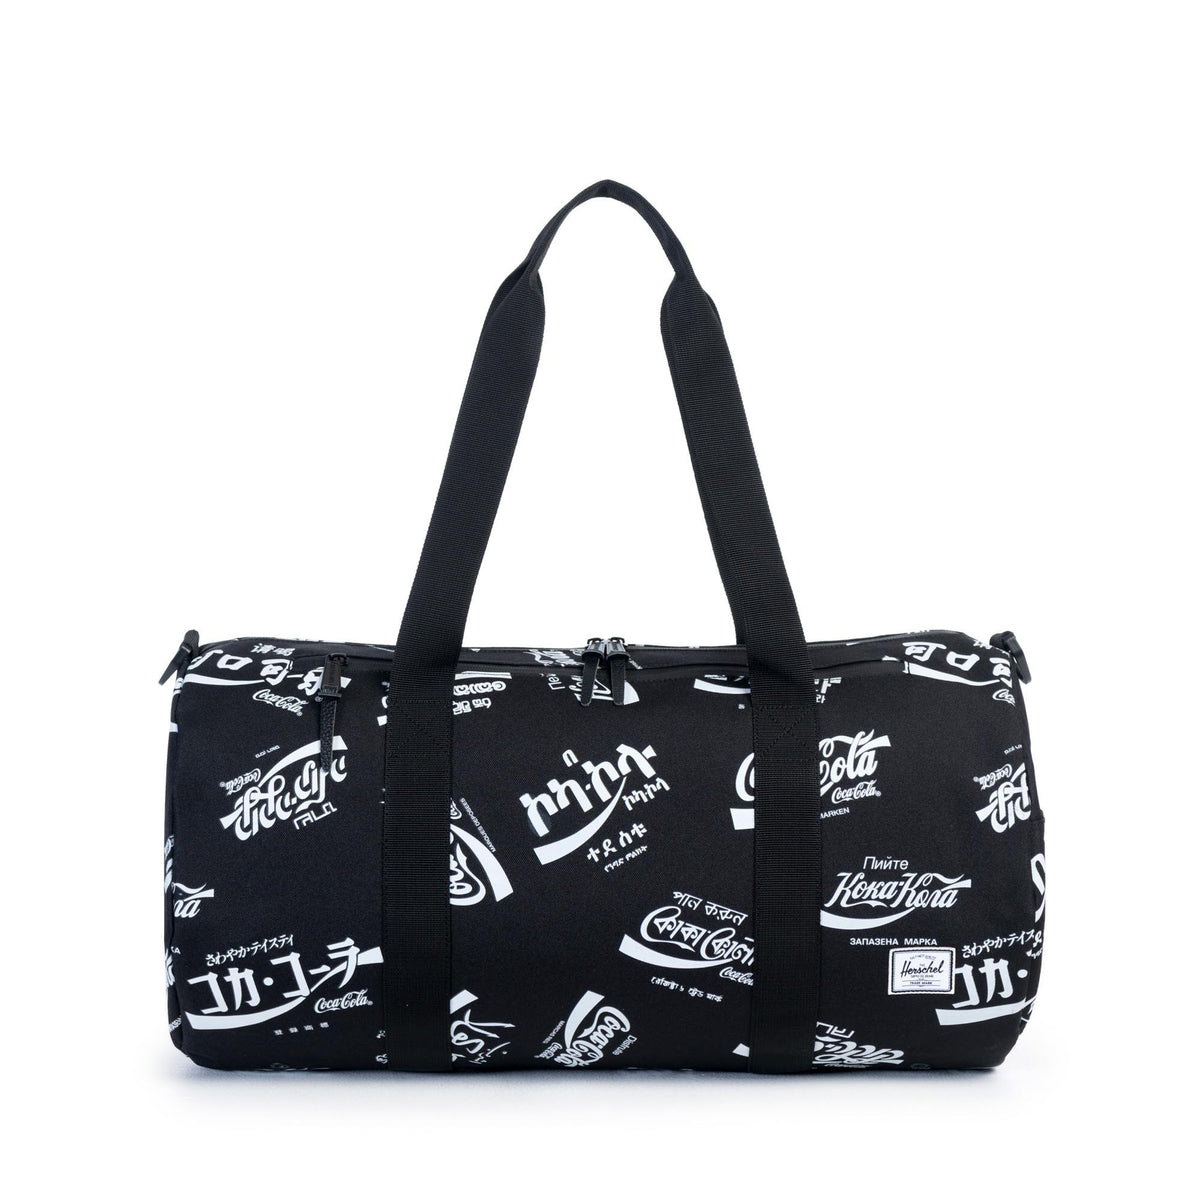 Herschel Supply Co.: Sparwood Duffle - Black Coca Cola